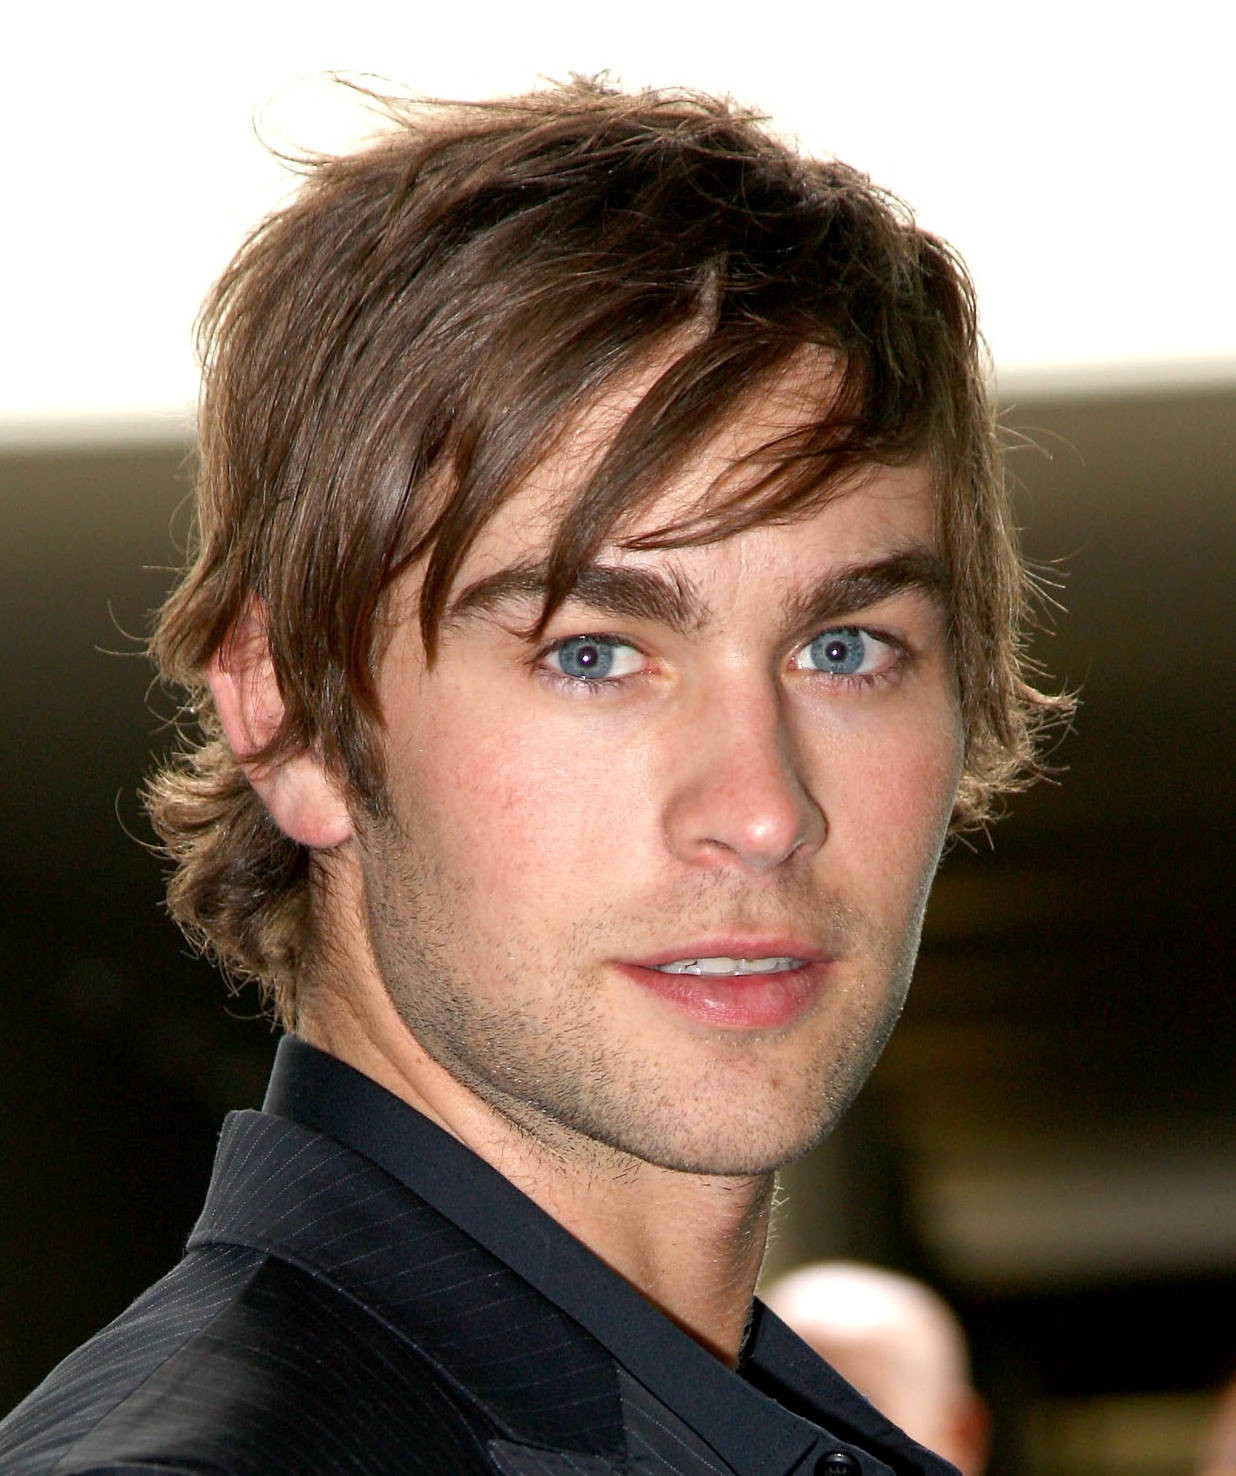 Best ideas about Mens Shaggy Hairstyle . Save or Pin Hairstyles World Shaggy Mens Hairstyles Now.